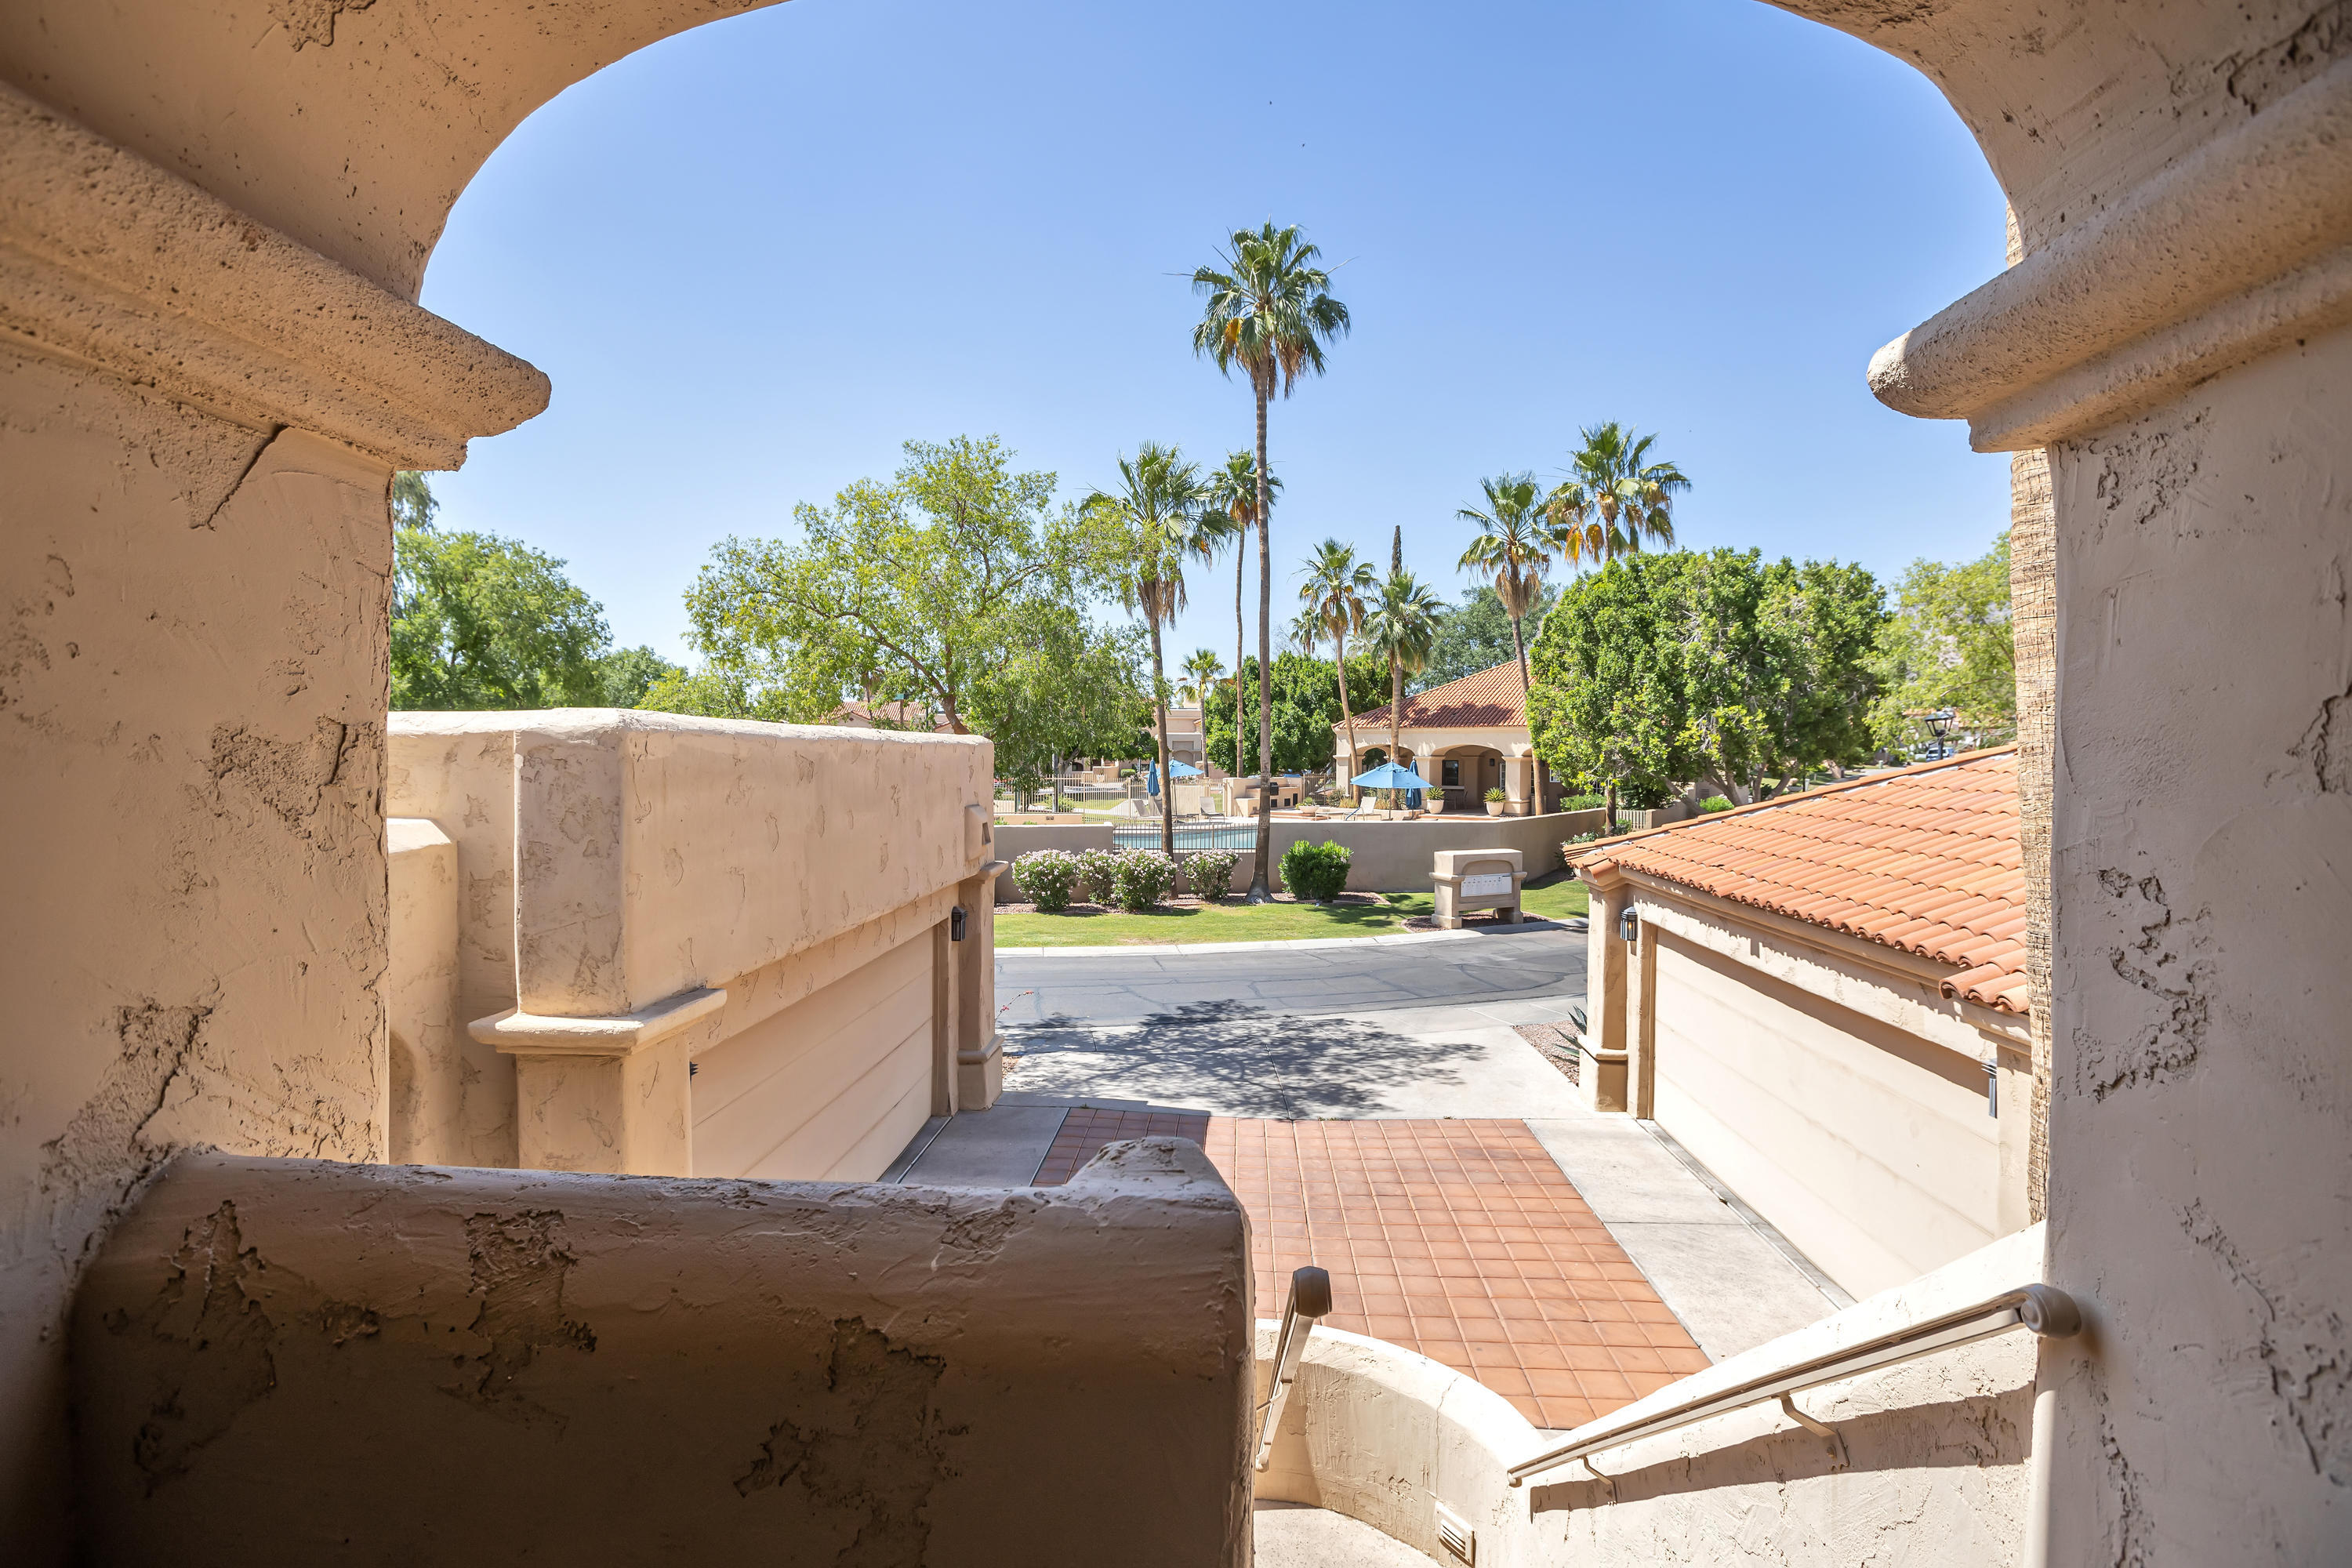 This is the nicest, unfurnished Biltmore Courts II rental on the market at this time or in the recent past in the prestigious Arizona Biltmore. Great contemporary home with terrific upgrades, including:  wood floors, fresh paint, stainless appliances,  pedestal sinks in the baths, which are just a few of the features. Vaulted ceilings, fireplace in living room, lovely patio with views of the lake on the 12th hole of the Links golf course, Wrigley Mansion, and downtown skyline. Conveniently located to the excellent dining, entertainment, movies, and shopping at Biltmore Fashion Park and along Camelback Corridor. Biking/hiking/running paths along the canal; community heated pool and spa, and tennis courts. 15 minutes to downtown, Scottsdale, airport 5 minutes to I-51.